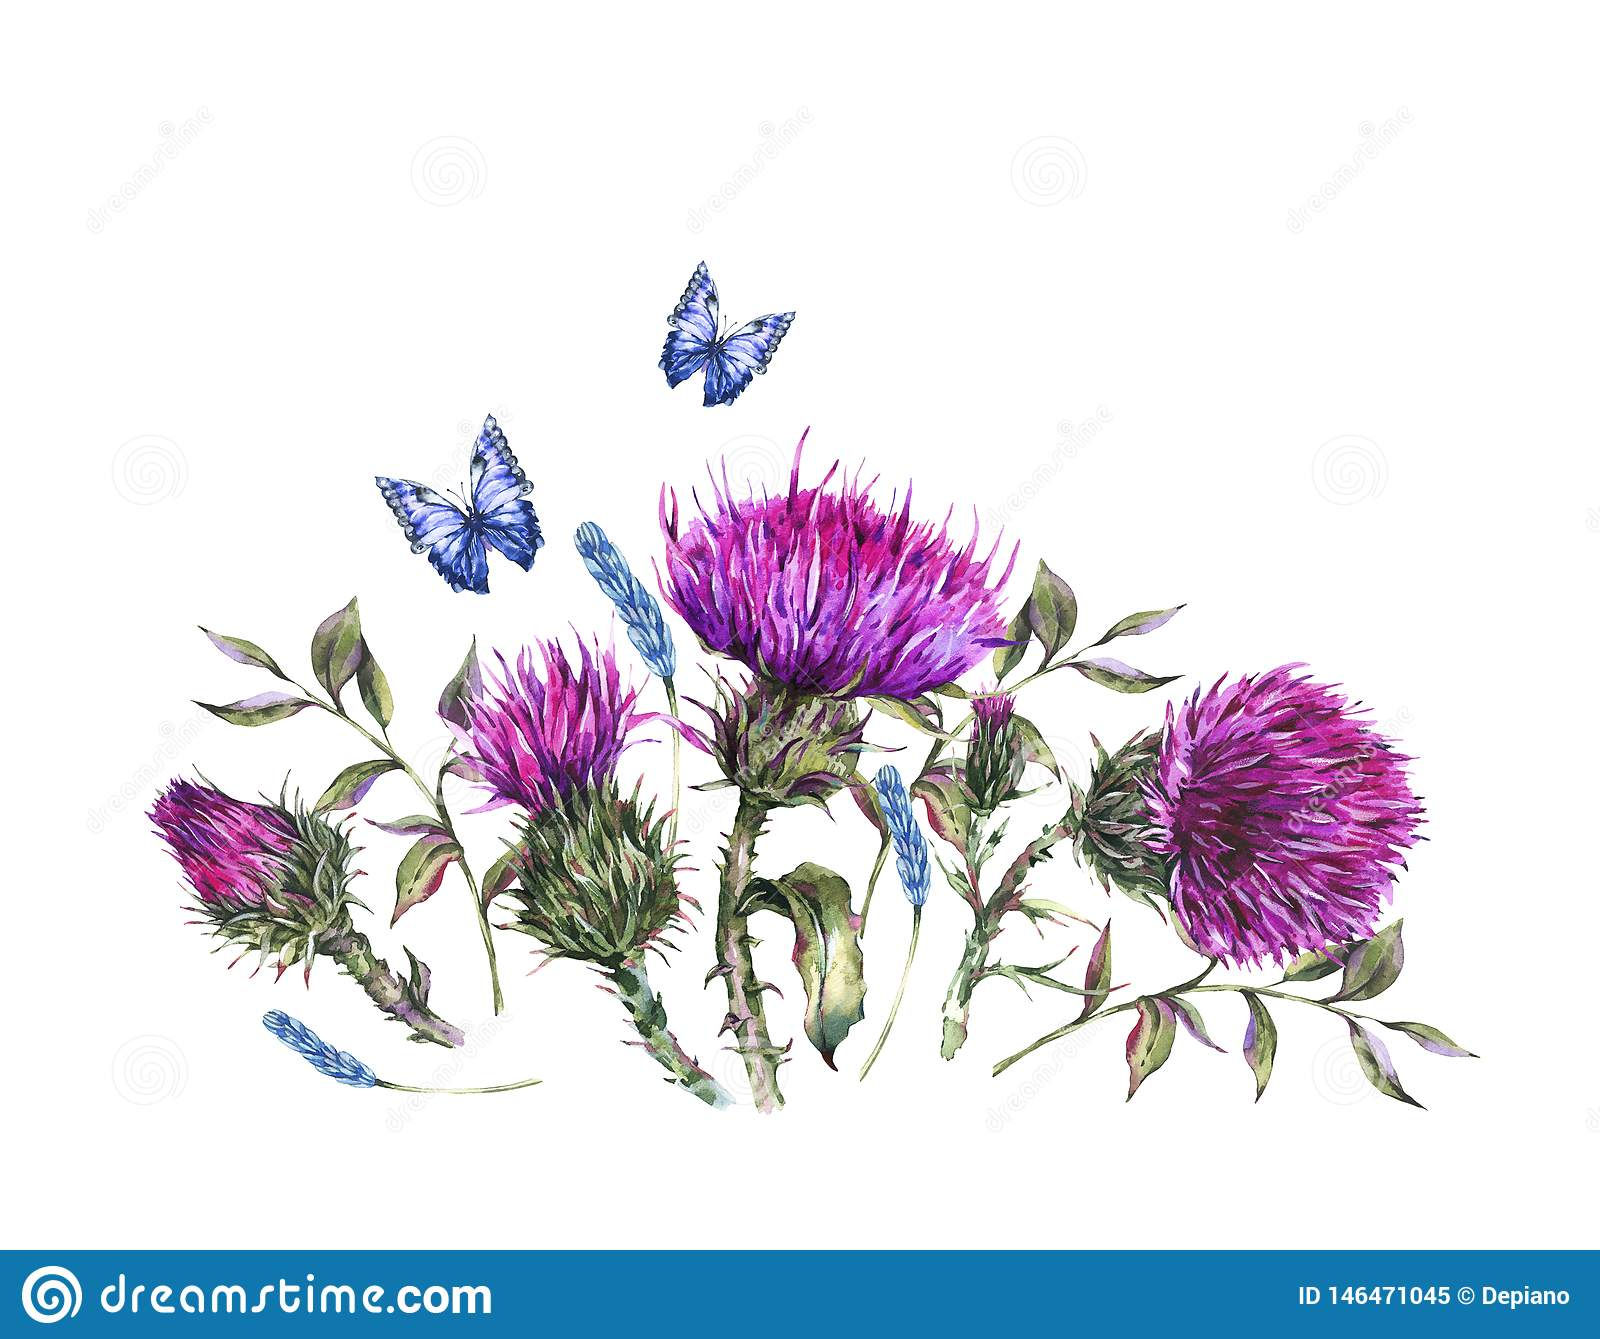 Watercolor thistle, blue butterflies, wild flowers illustration, meadow herbs vintage greeting card